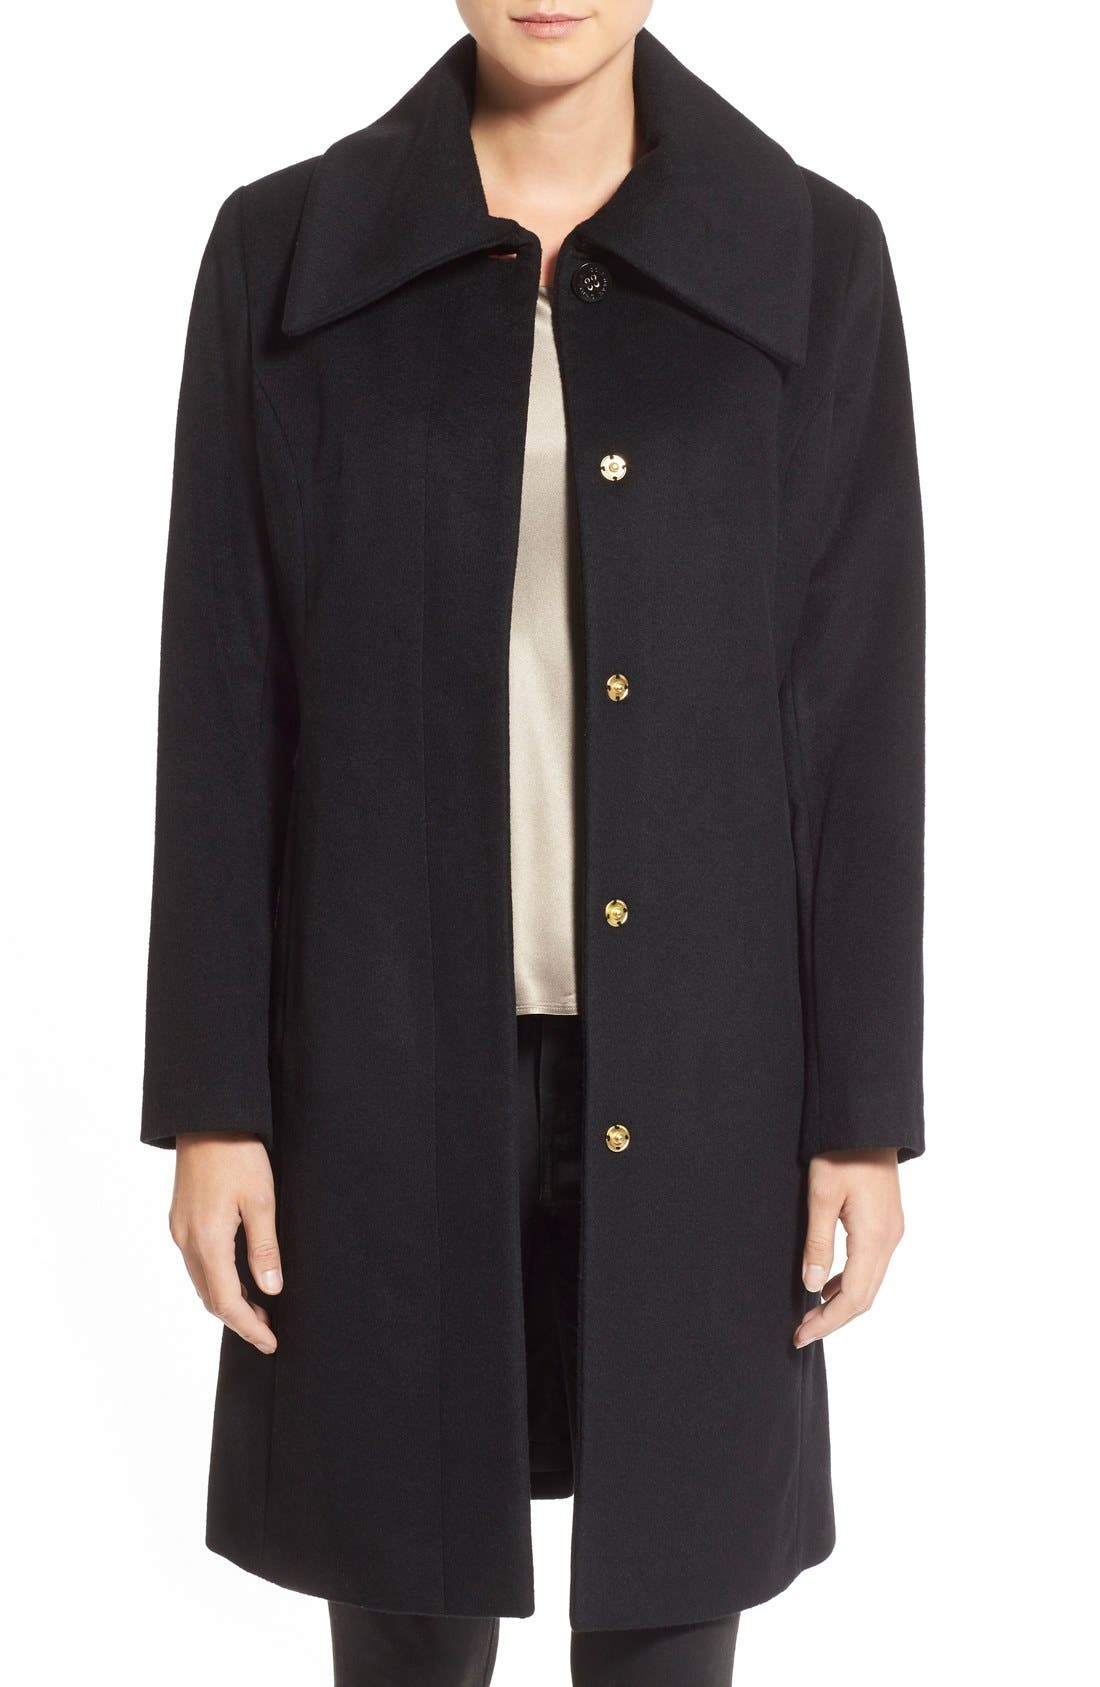 COLE HAAN SIGNATURE Single Breasted Wool Blend Coat